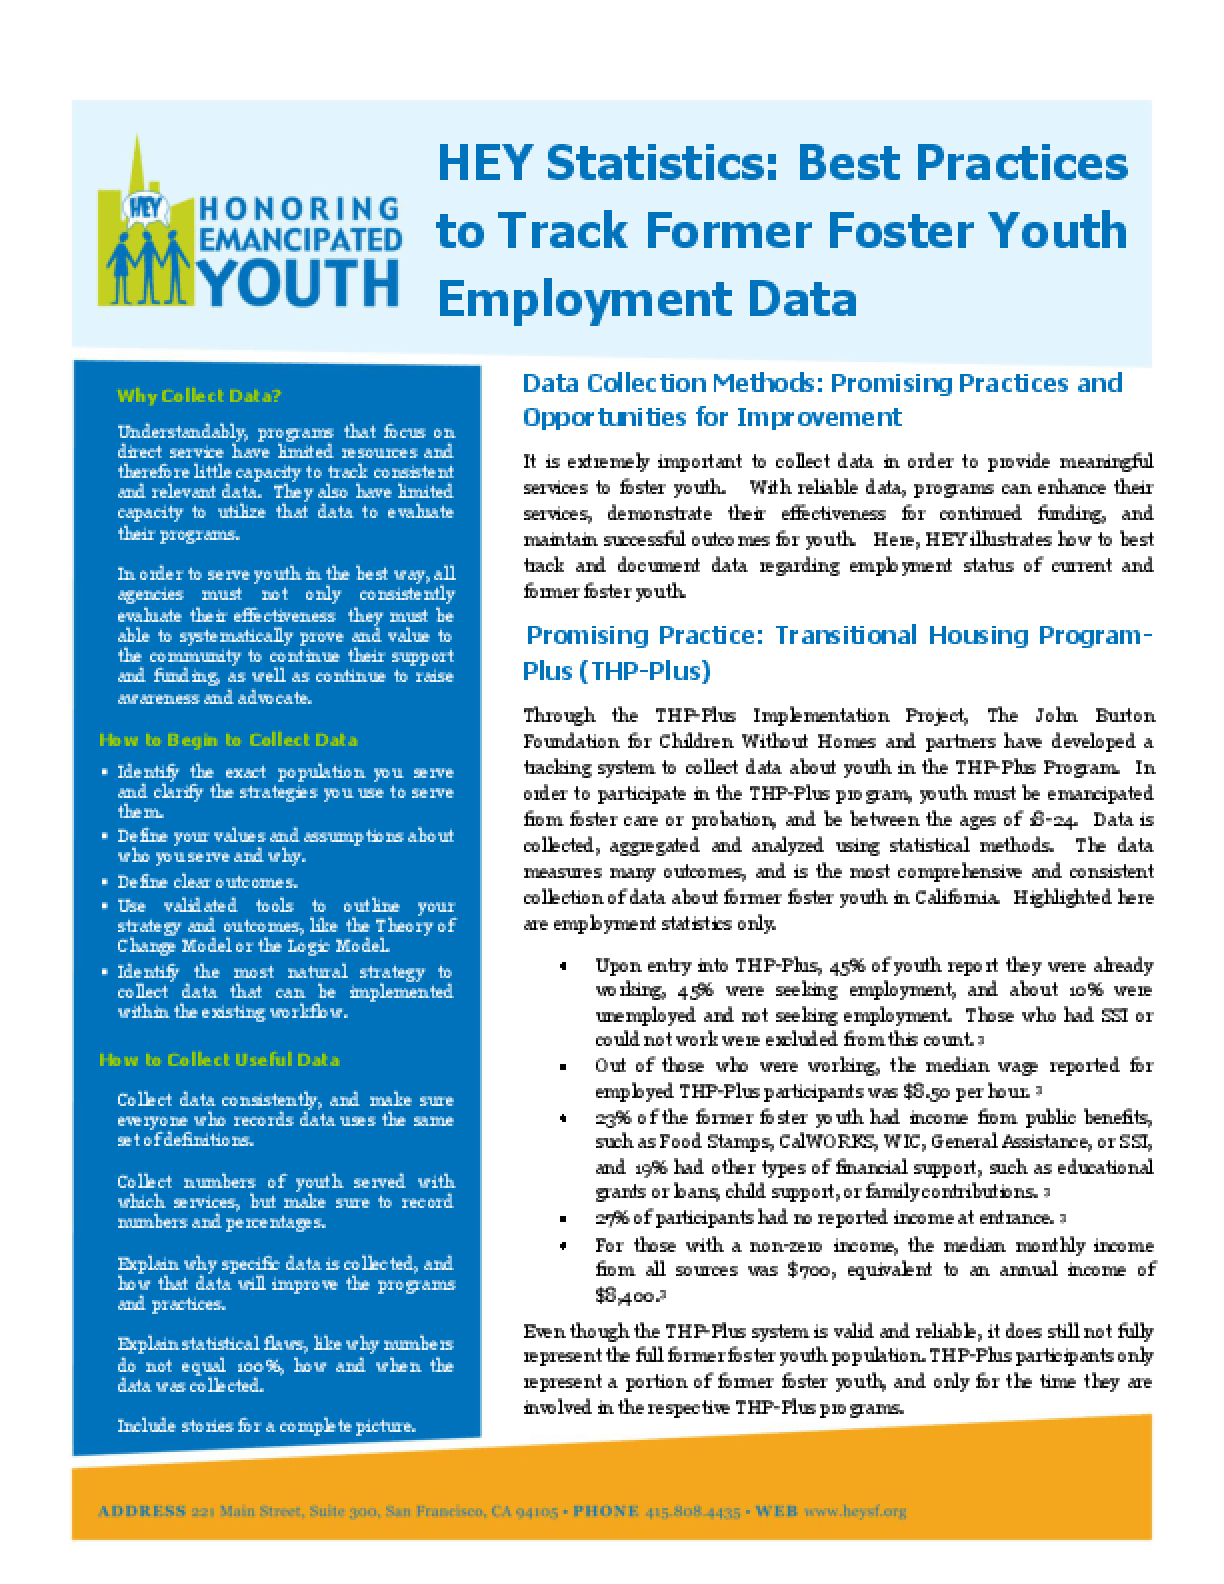 HEY Statistics: Best Practices to Track Former Foster Youth Employment Data